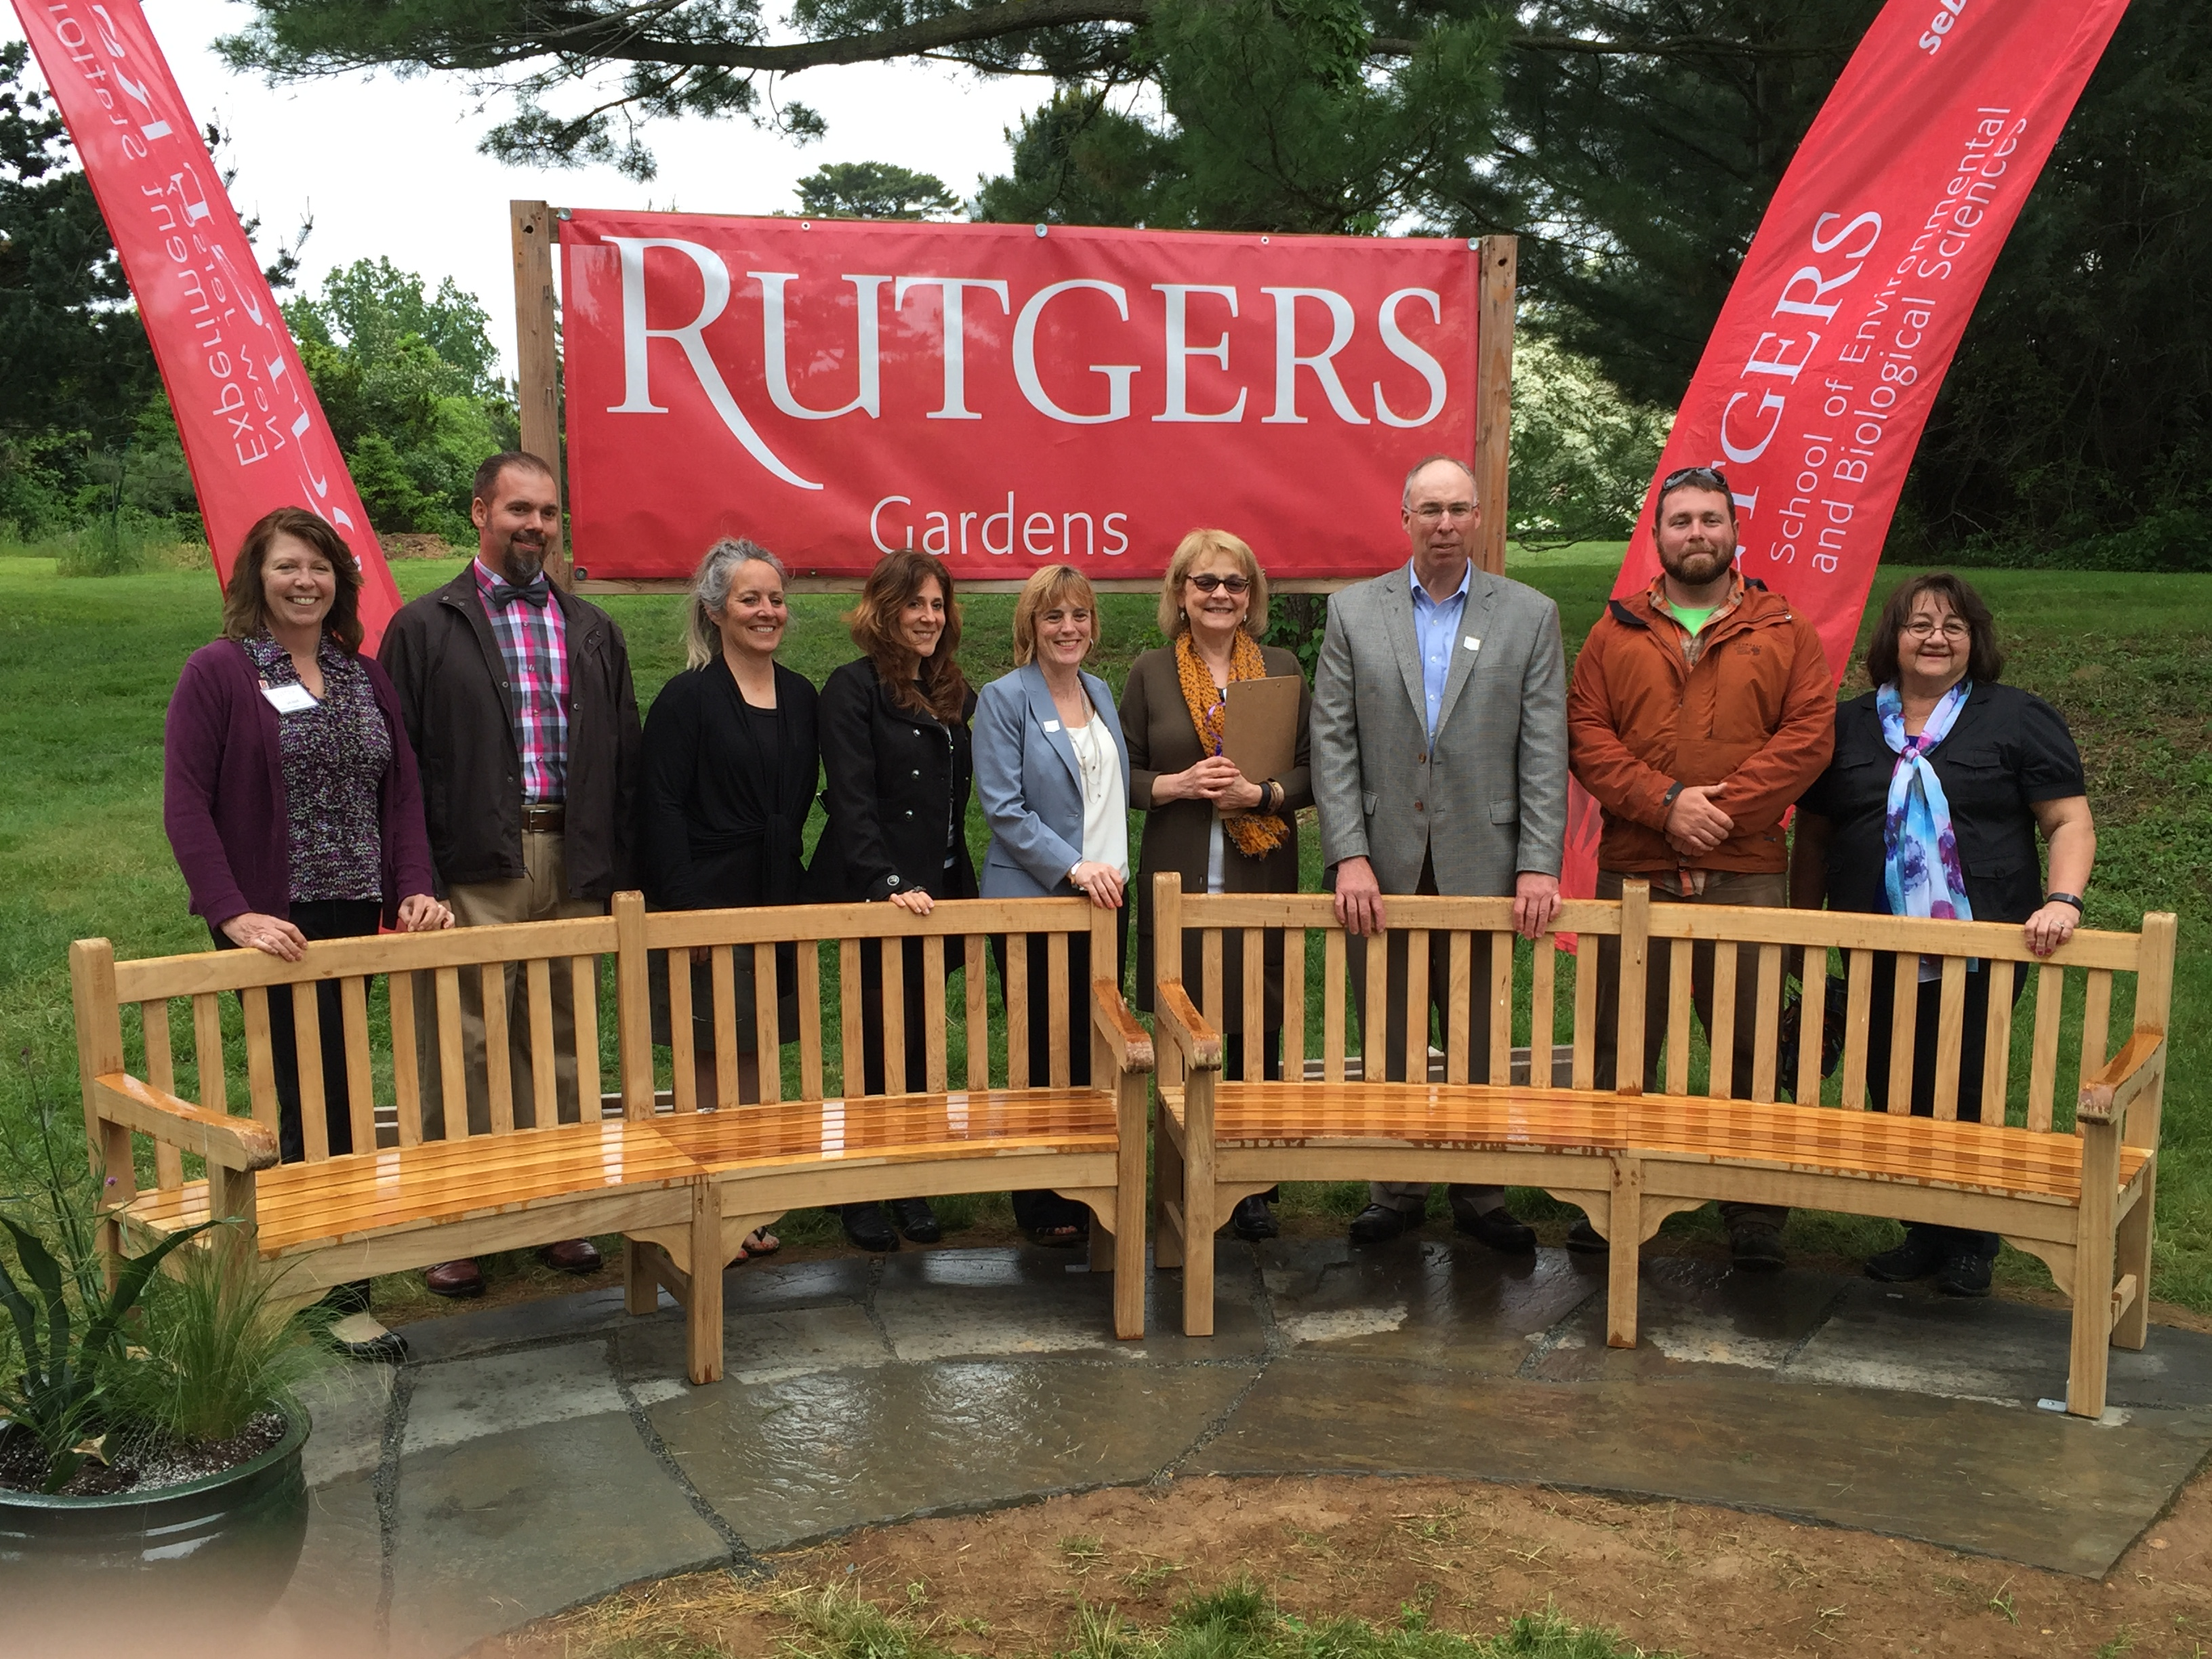 Rutgers Gardens: New Family Attraction on Ryders Lane